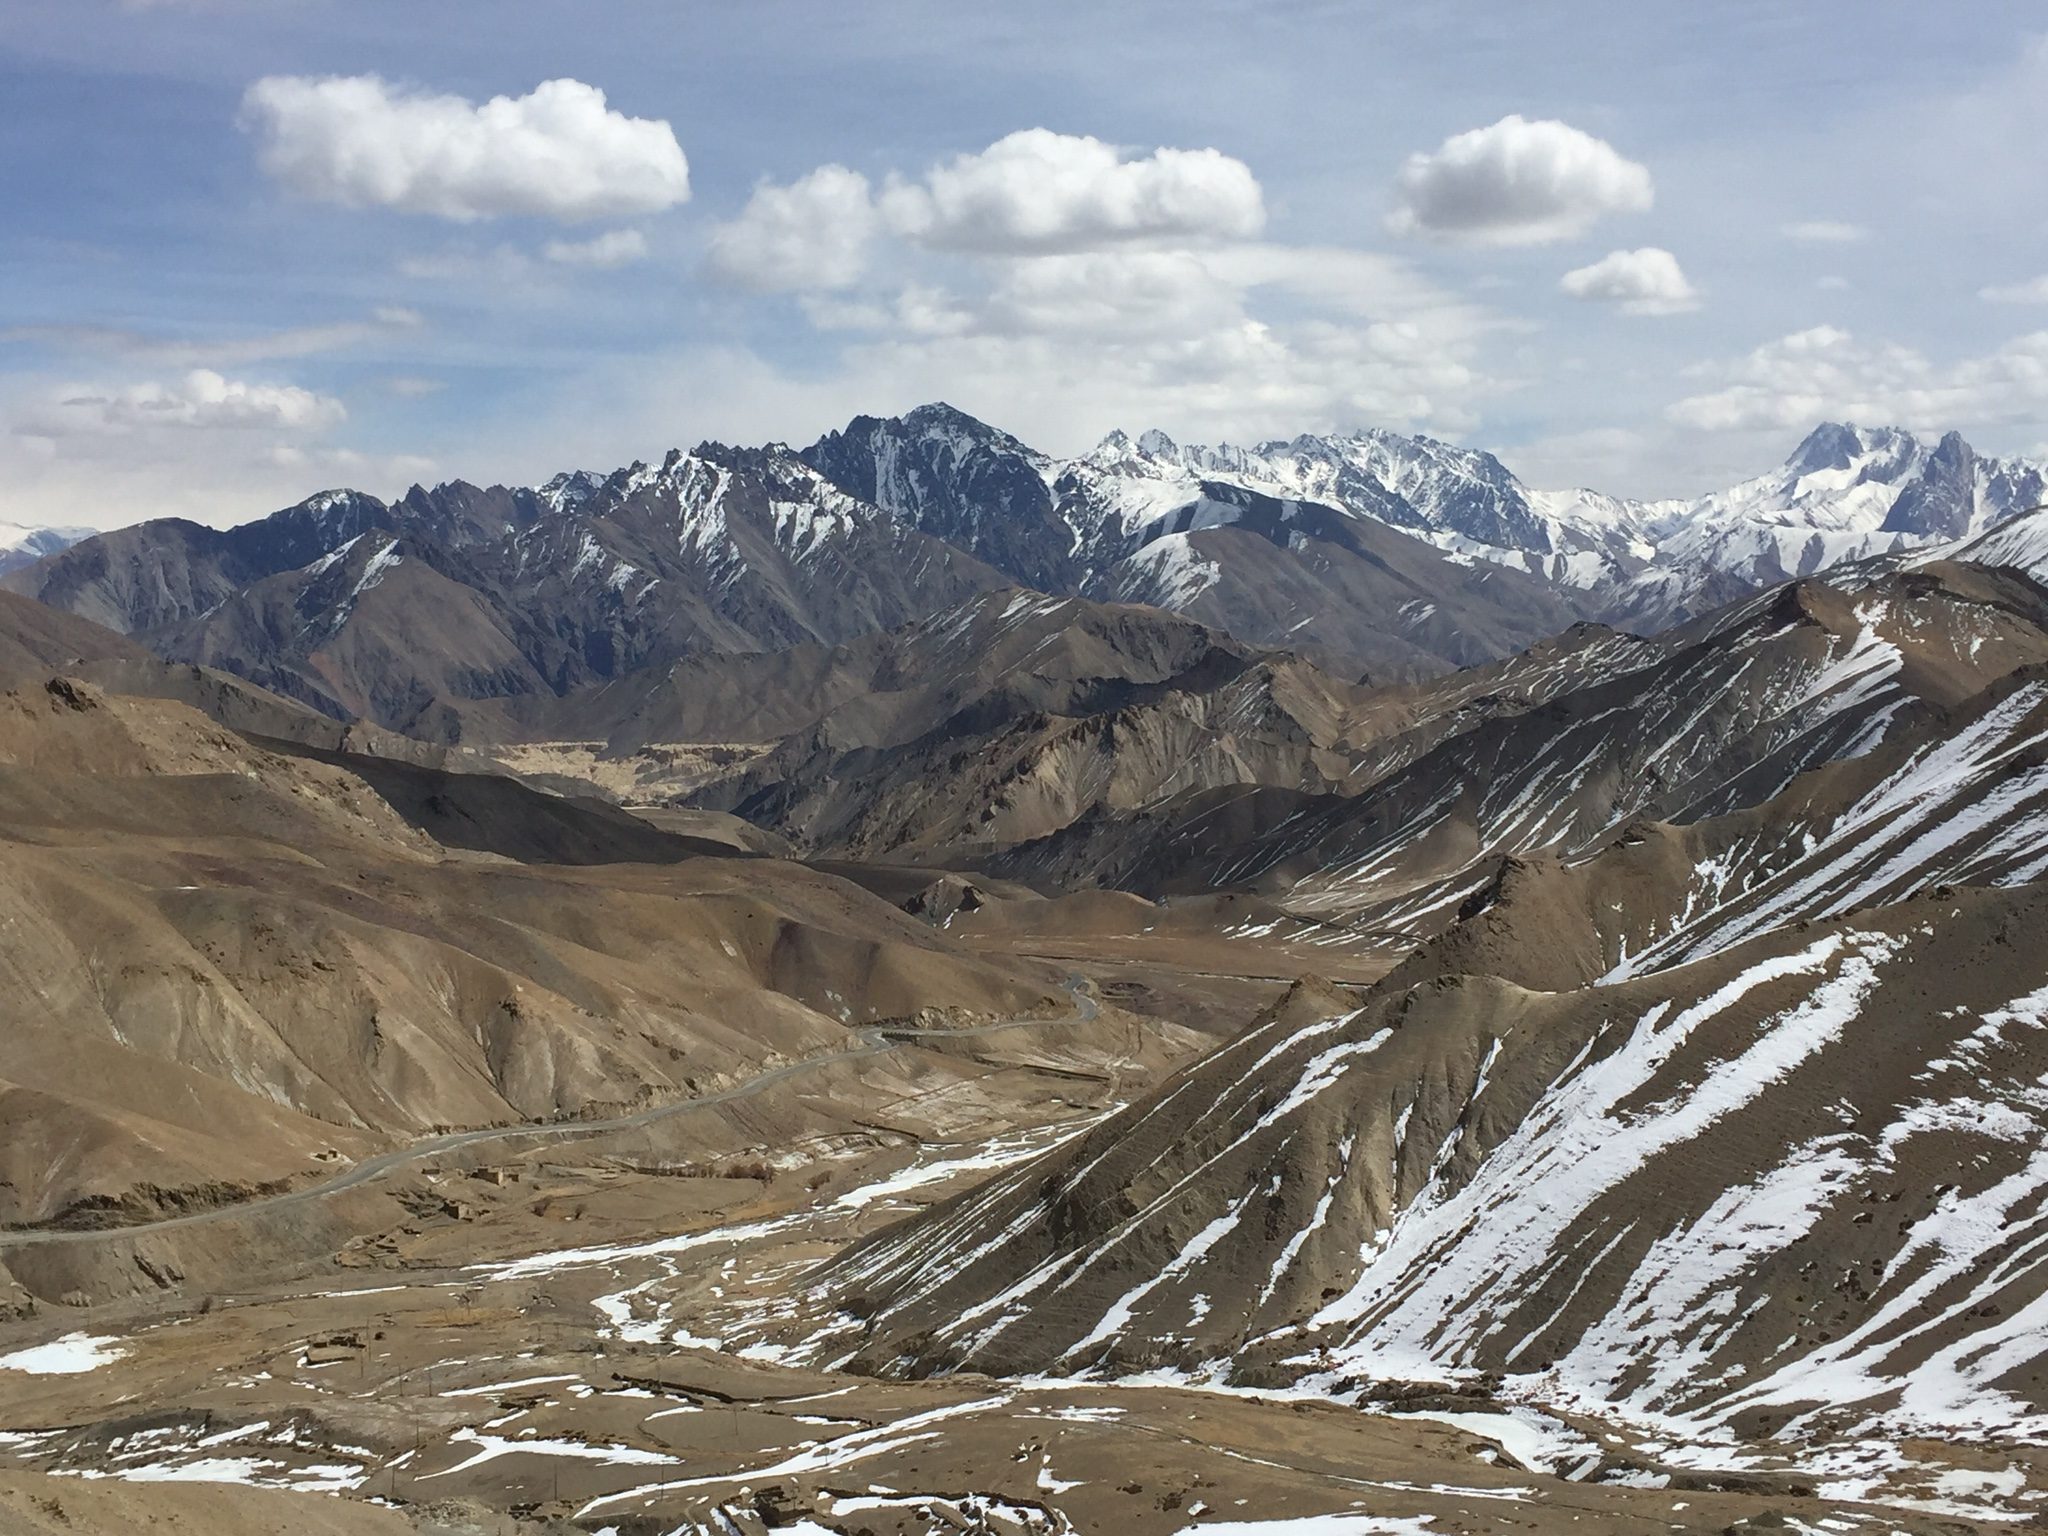 Karakoram Mountains, Ladakh, India